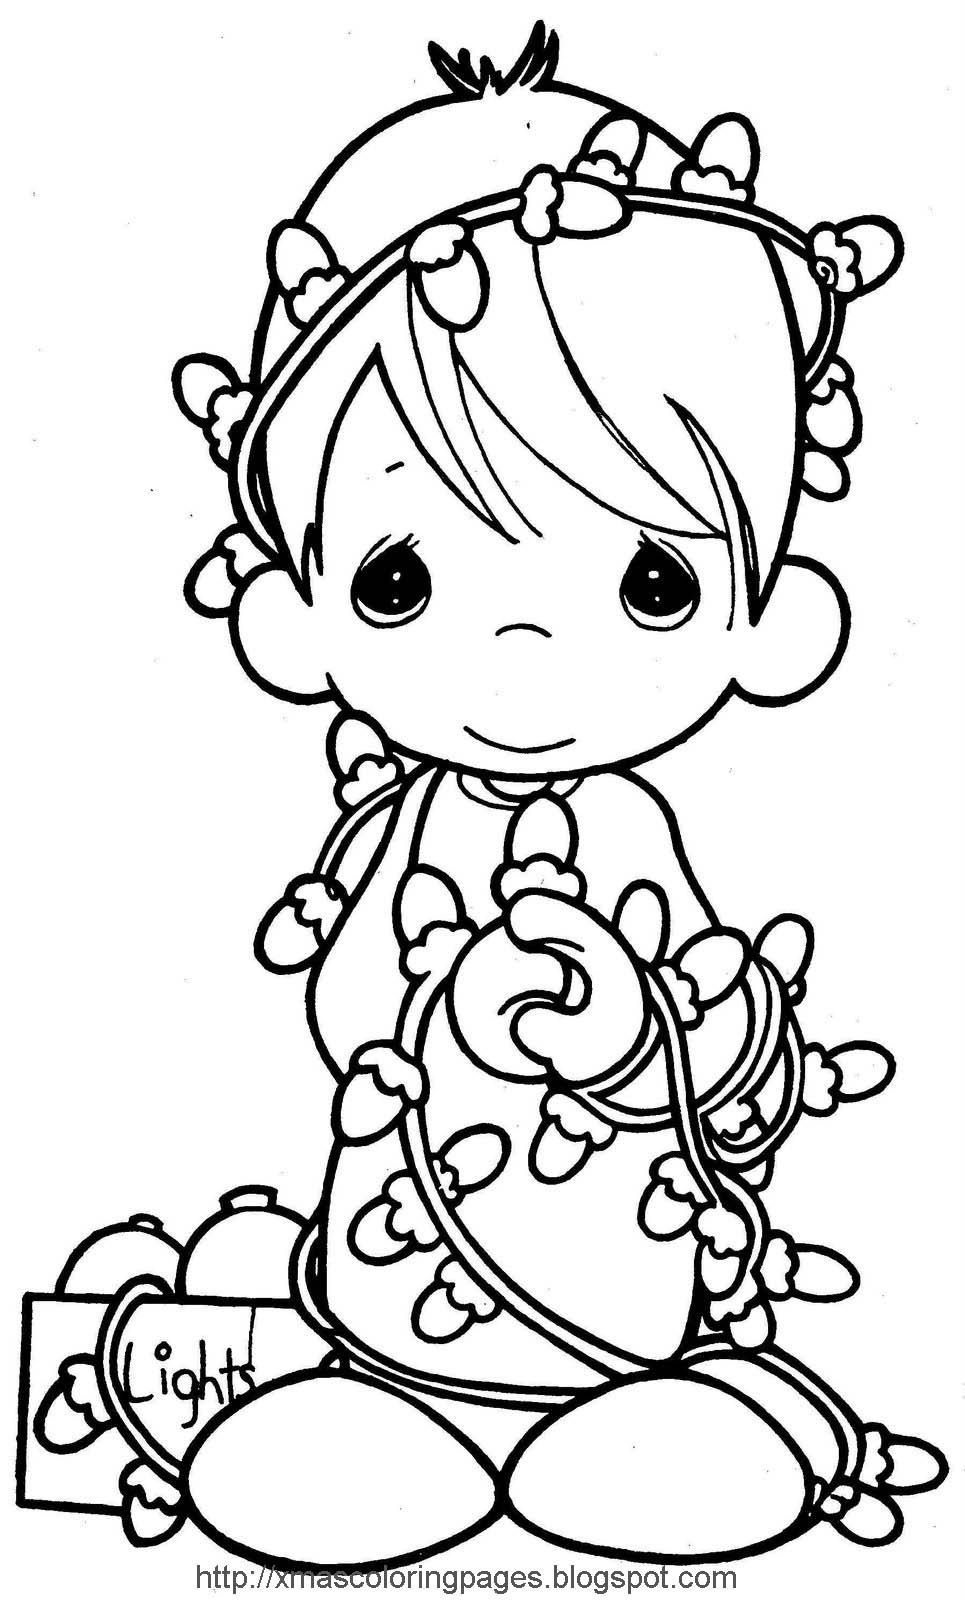 xmas coloring pages: angel coloring page | color sheets | precious